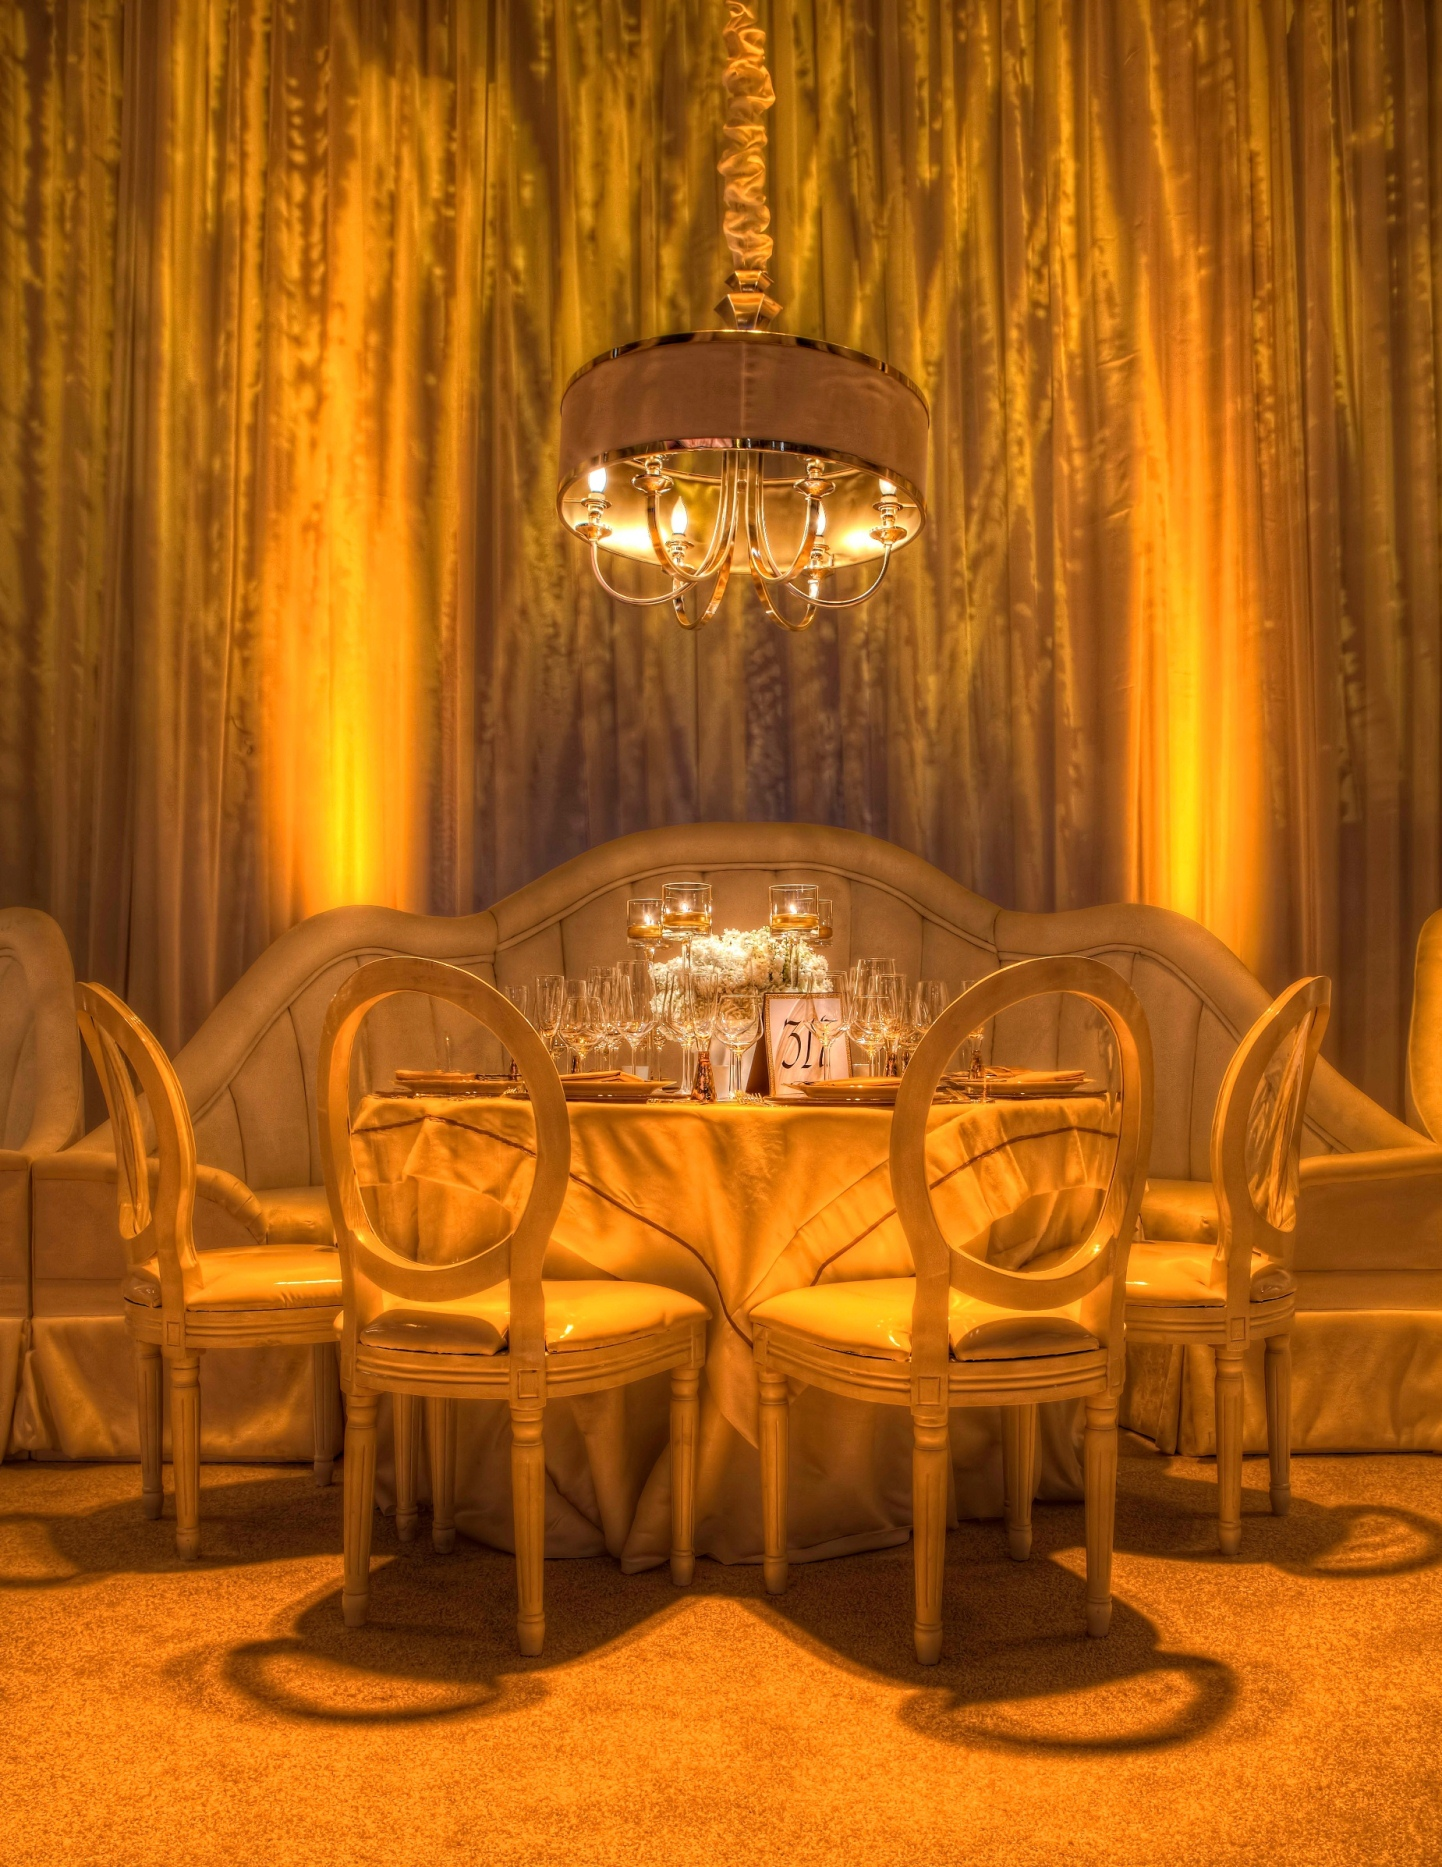 Banquette Deco Stunning Art Deco Event At The Biltmore In Arizona Revelry